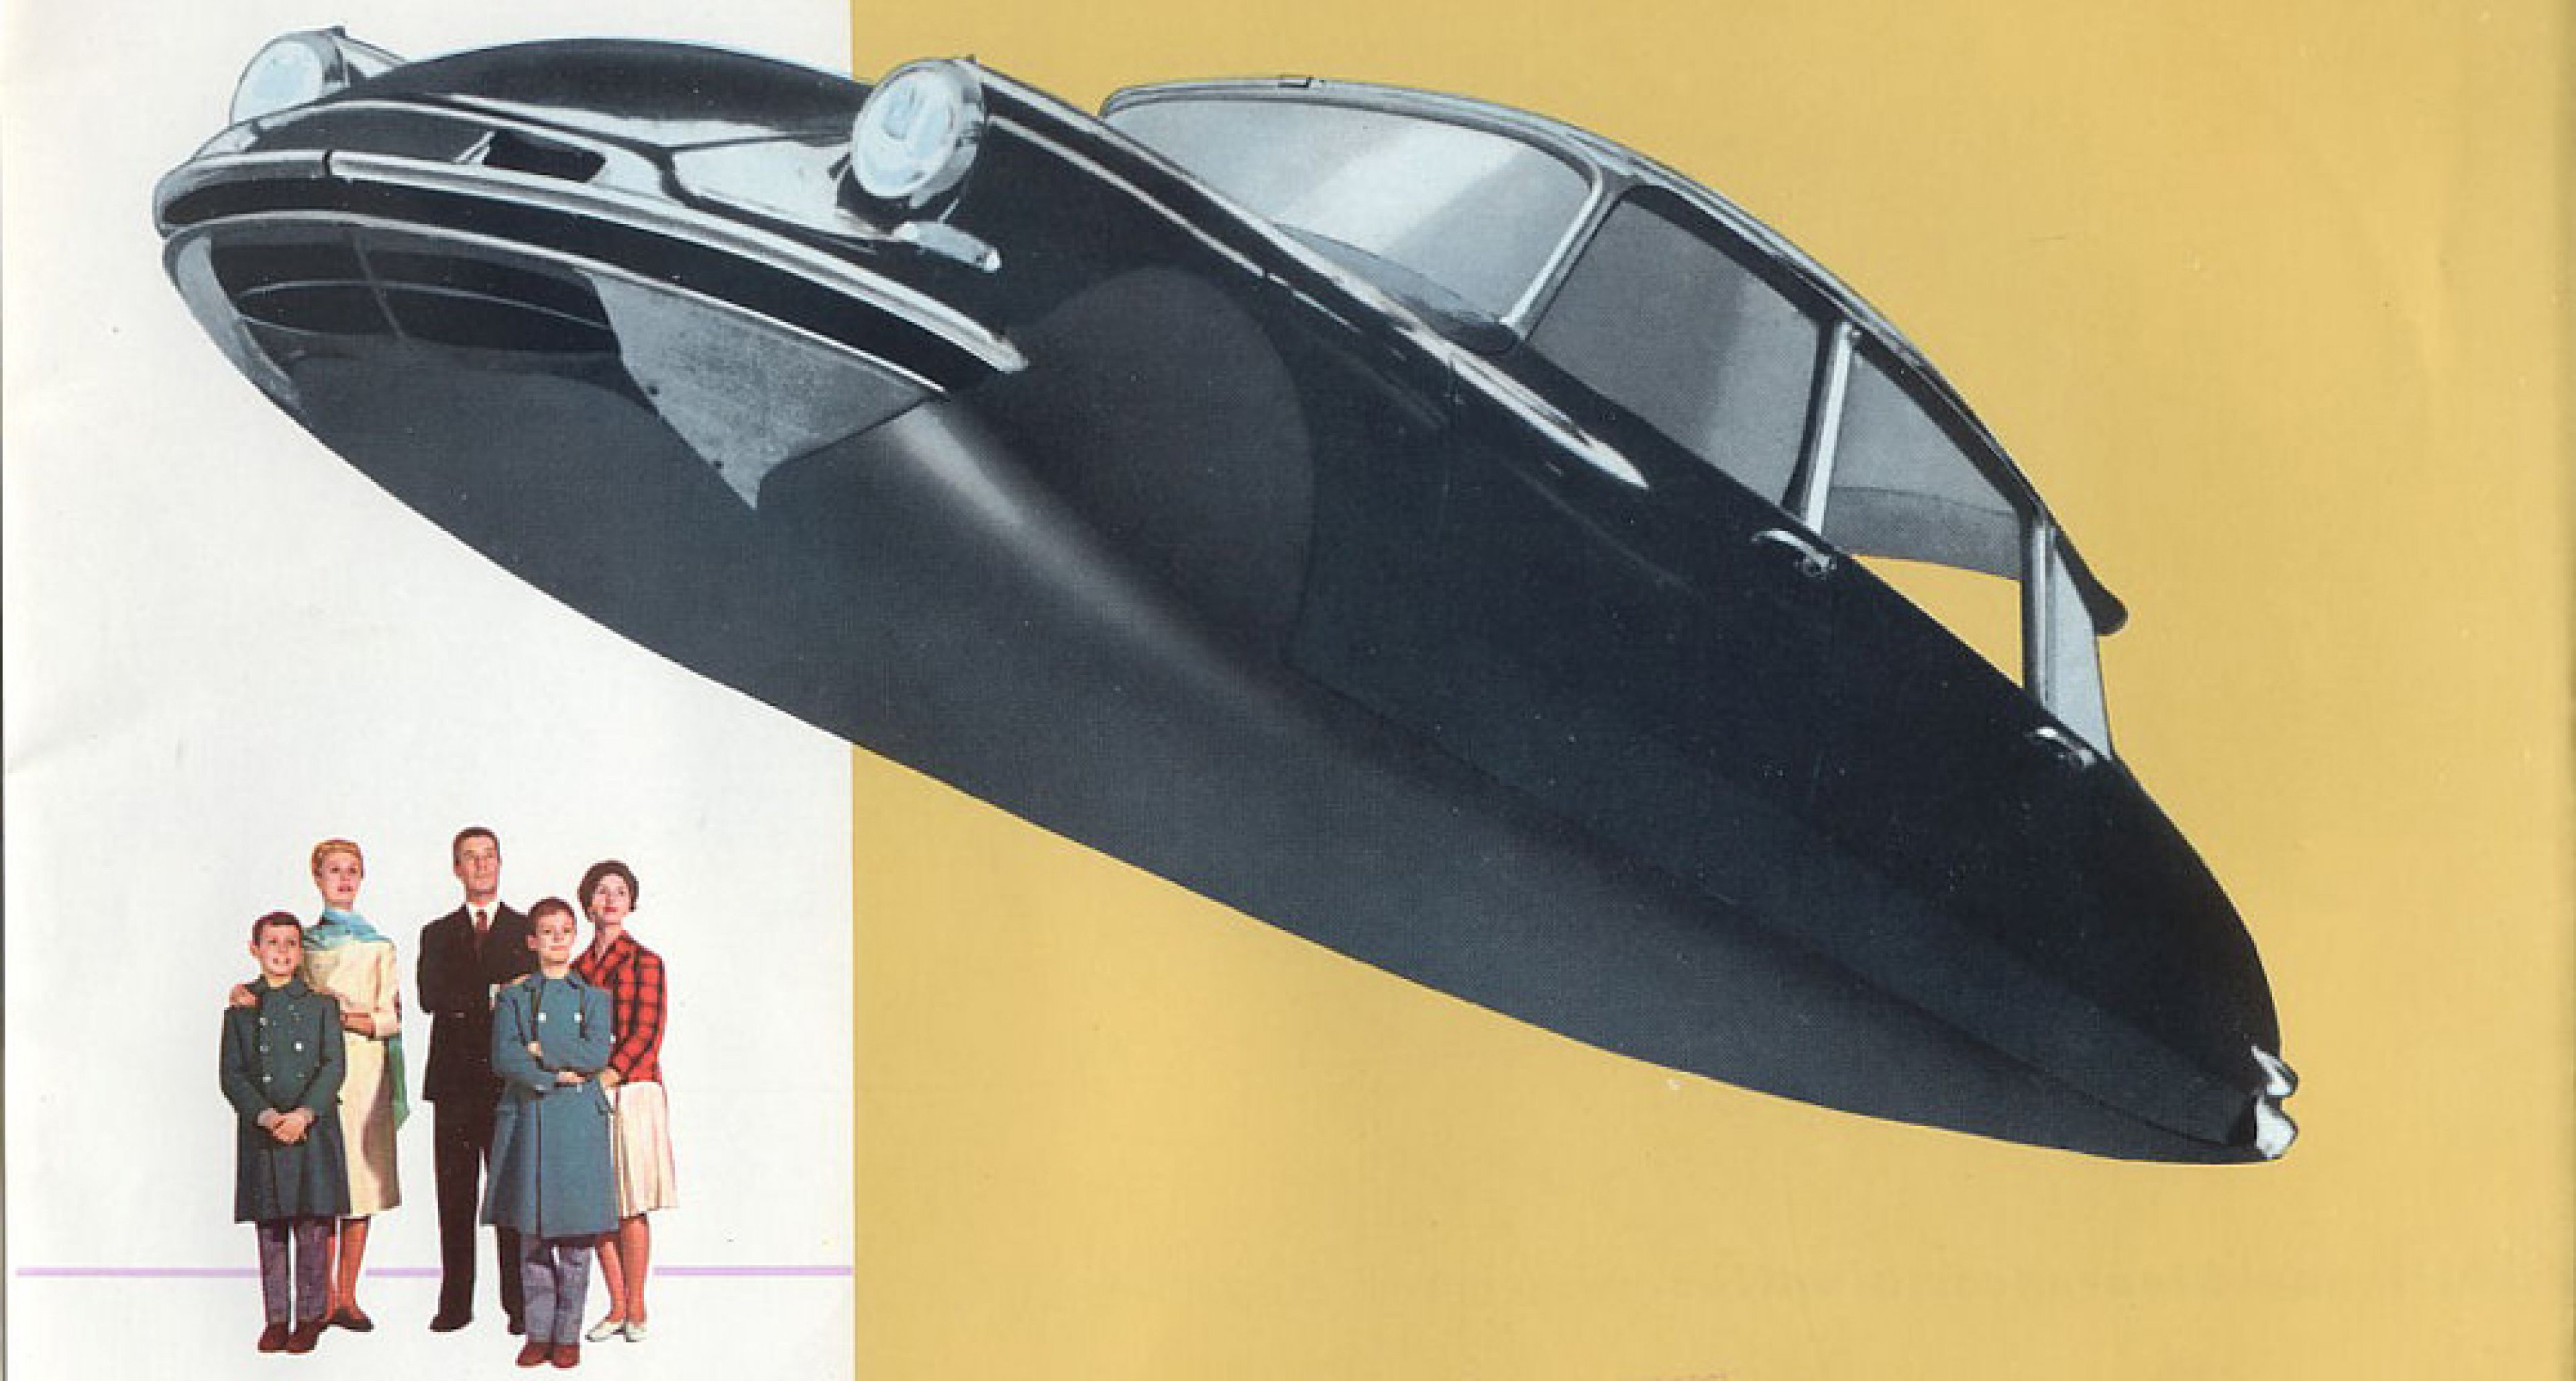 From Citroën's promotional material for the DS, promoting its futuristic looks